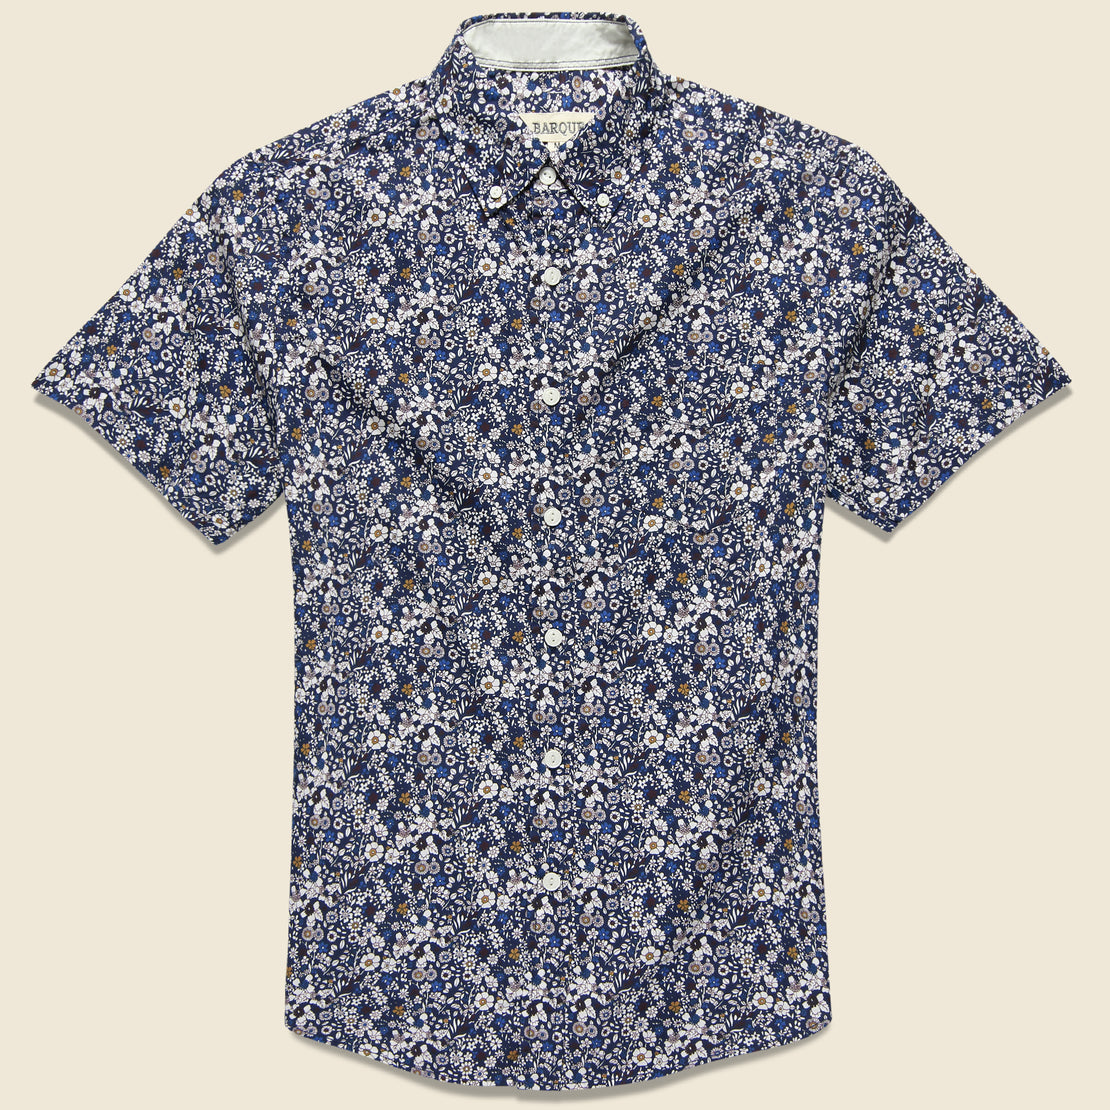 Barque Multi-Color Floral Shirt - Navy